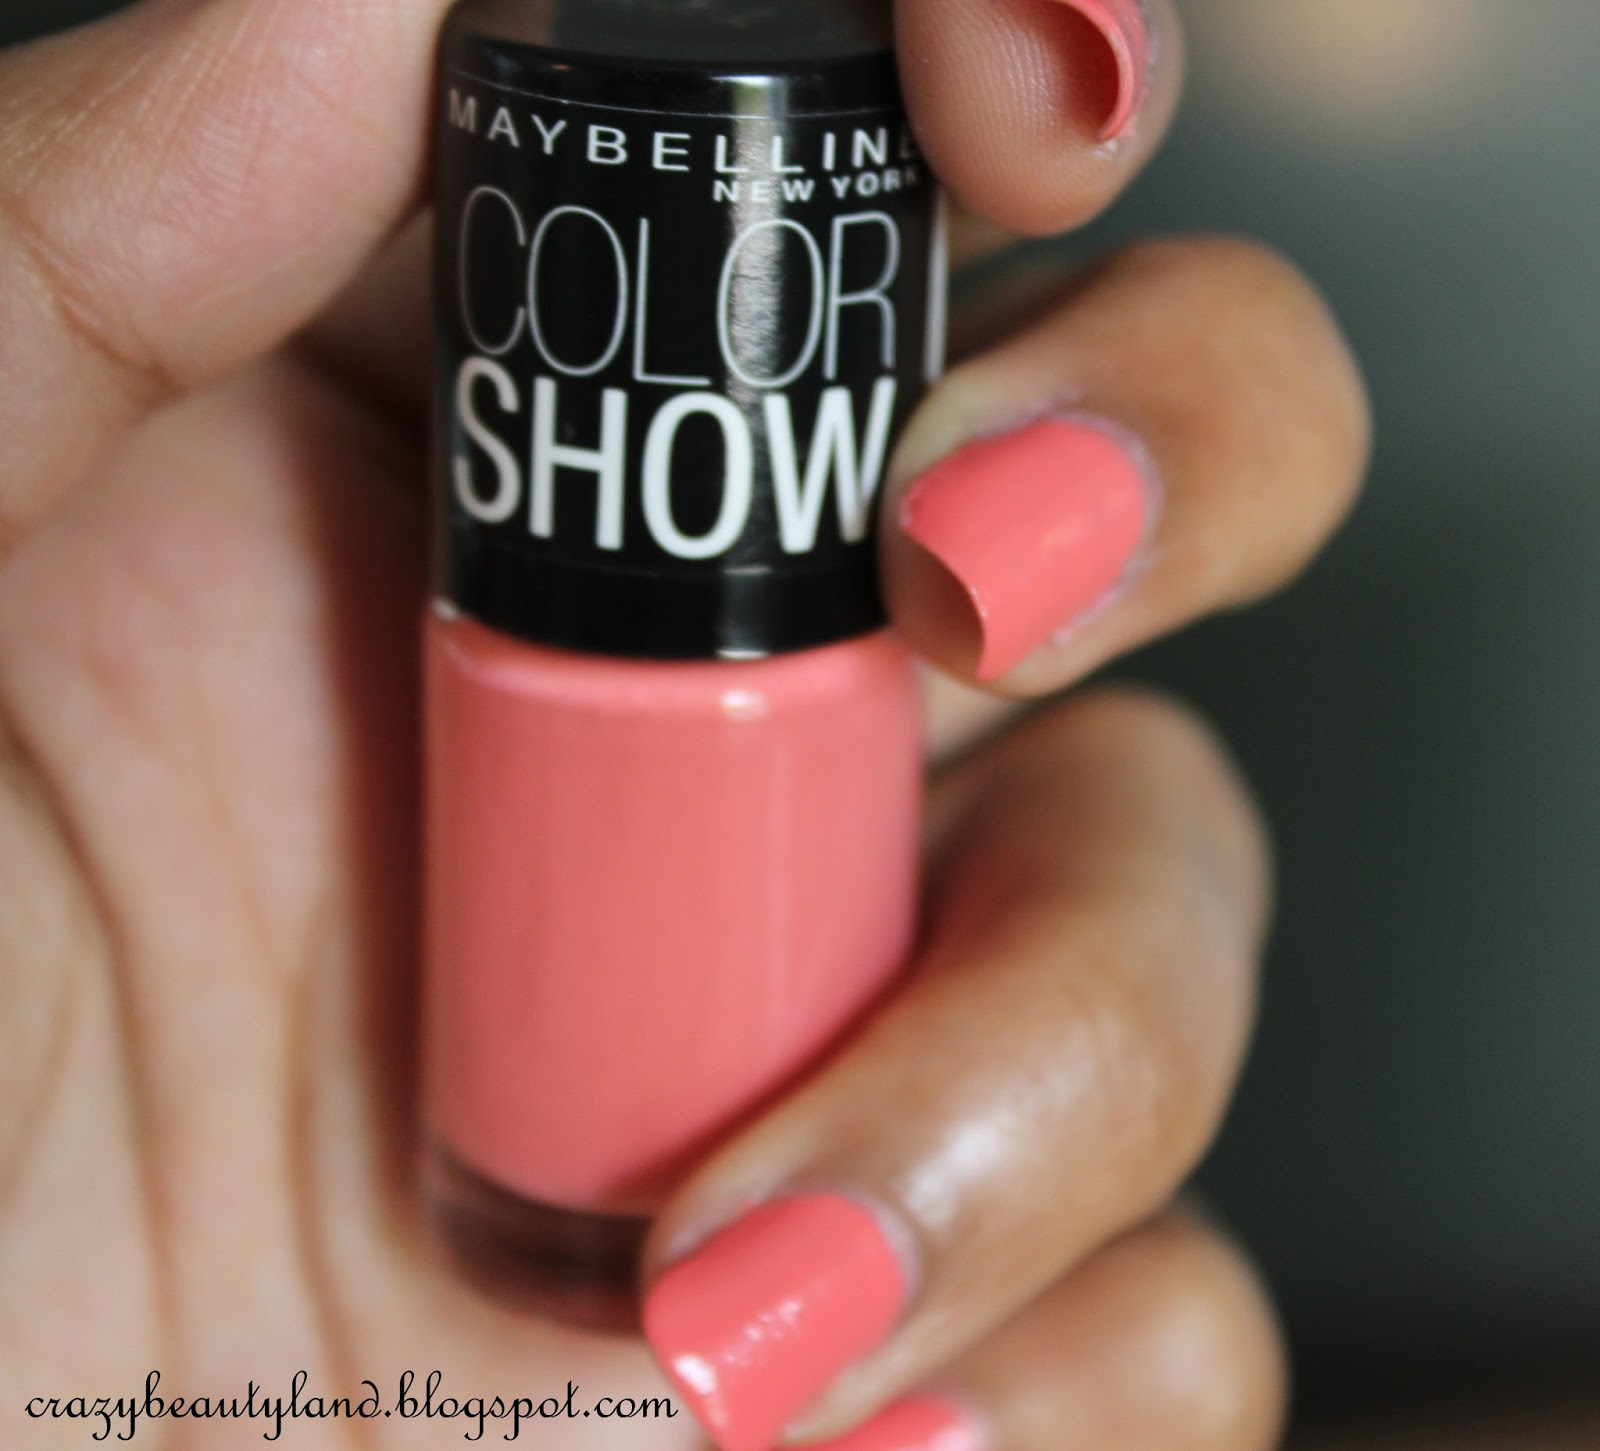 Maybelline Color Show Nail Polish in Coral Craze (211) - Review ...